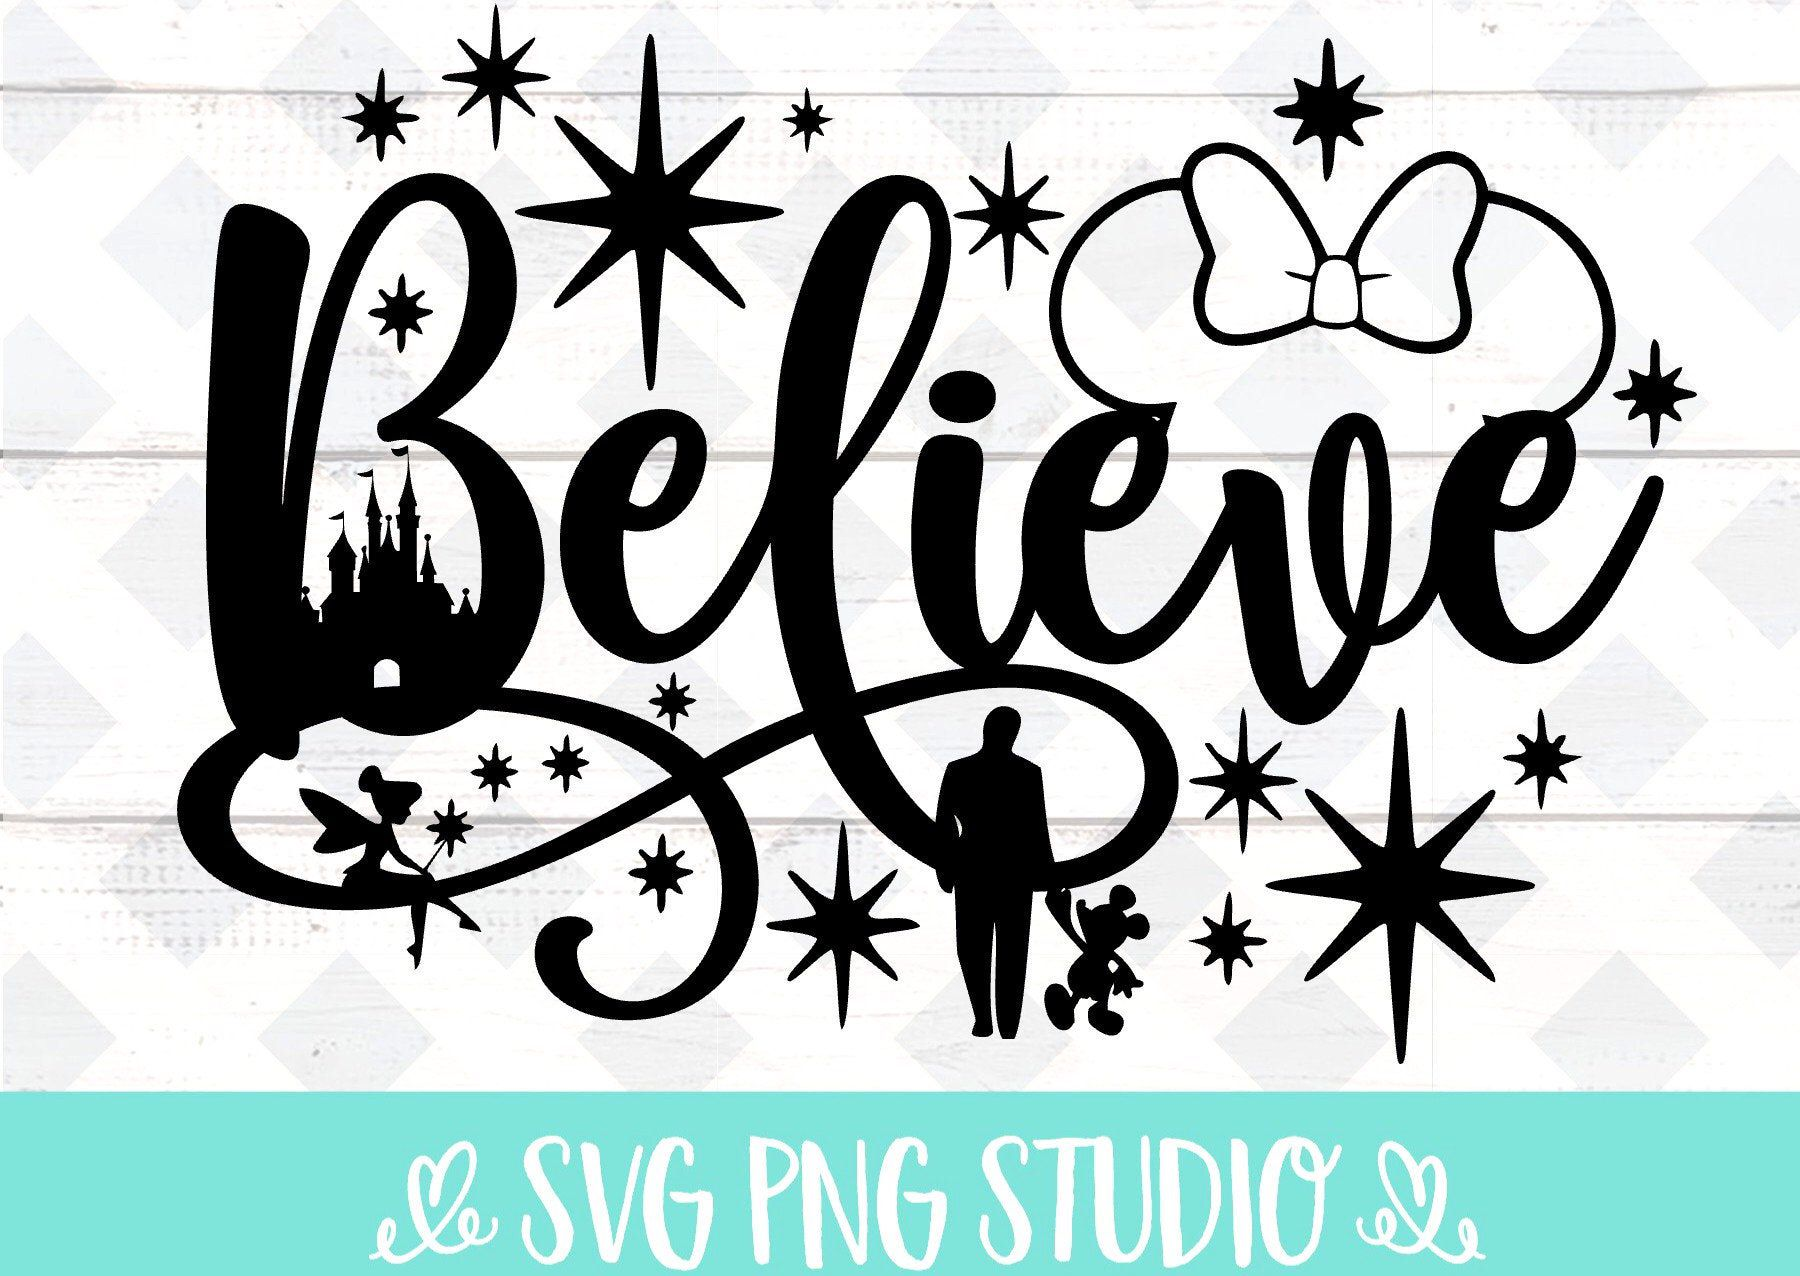 Believe In Magic Svg Inspired By Disney Svg Png Sublimation Etsy In 2020 Disney Decals Disney Diy Disney Silhouette